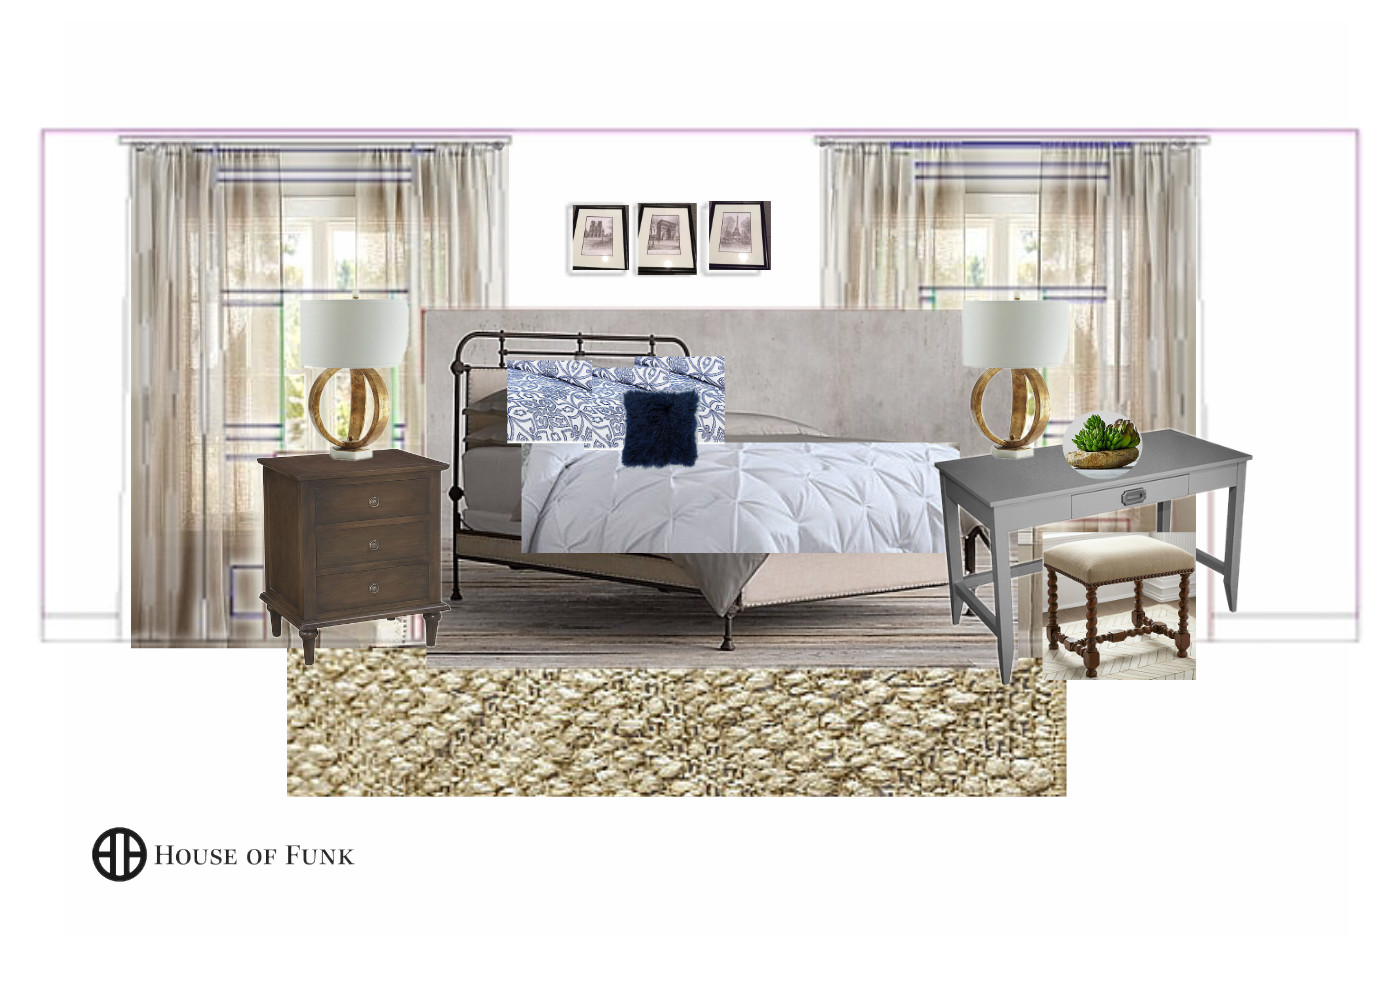 An inspiration image of how Ashley's room will look with the new furnishings